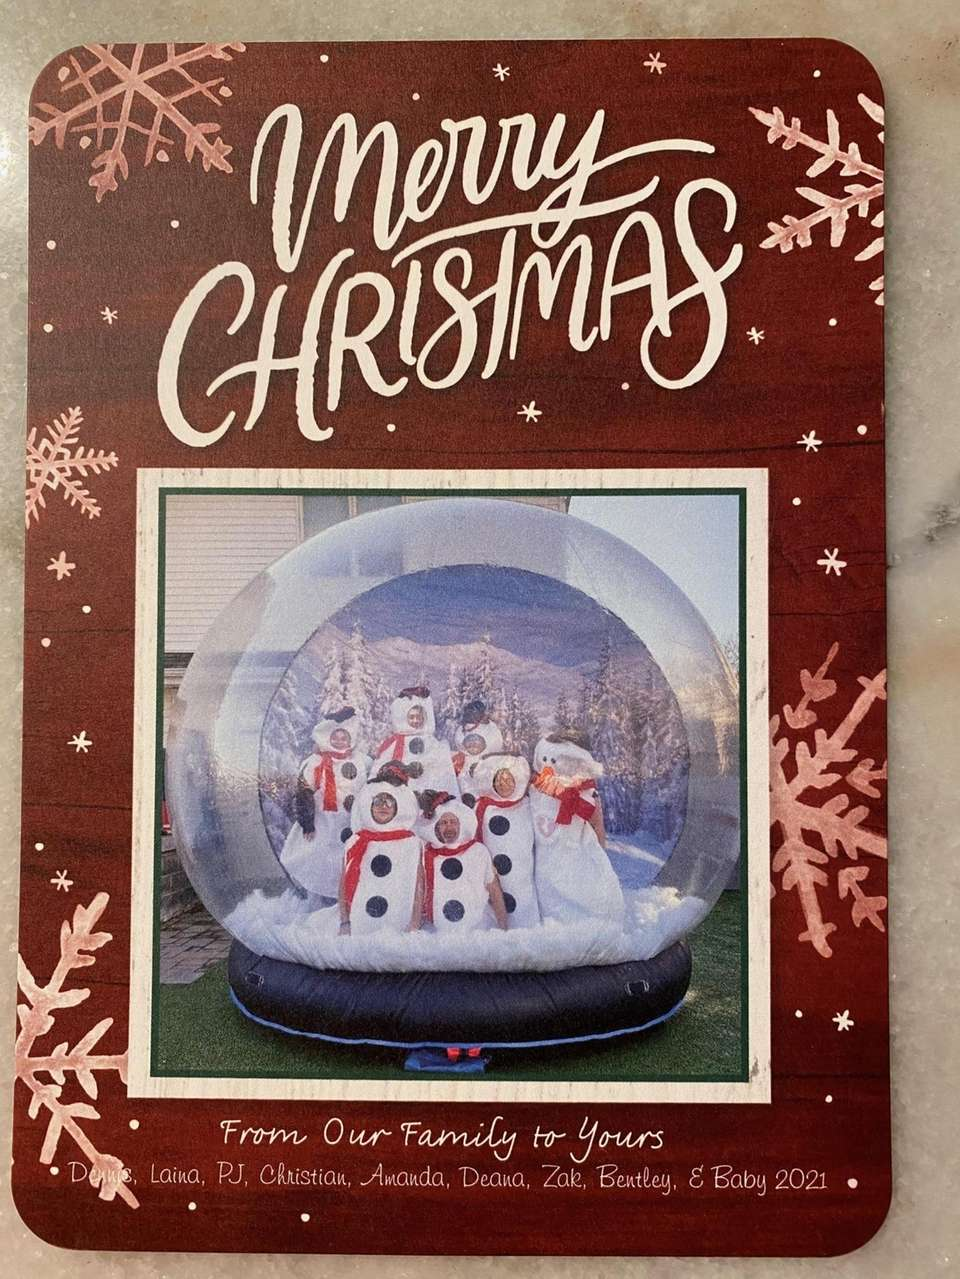 This family's tradition: snow globe fun in the